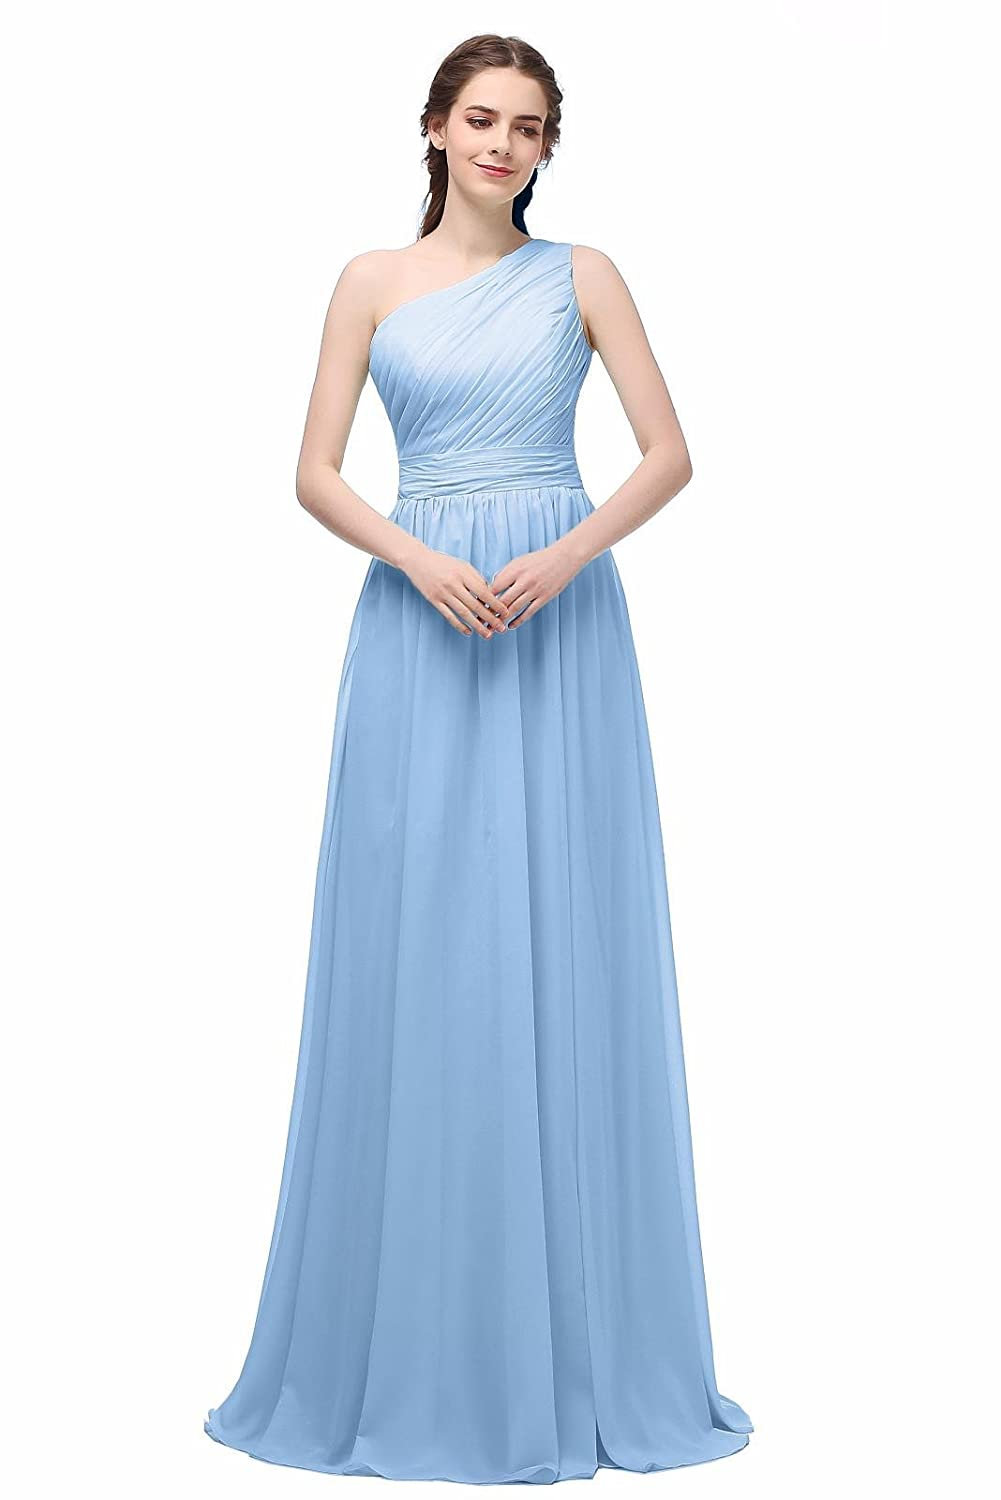 Ever Girl Women\'s Bridesmaid Chiffon Prom Dresses Long Evening ...